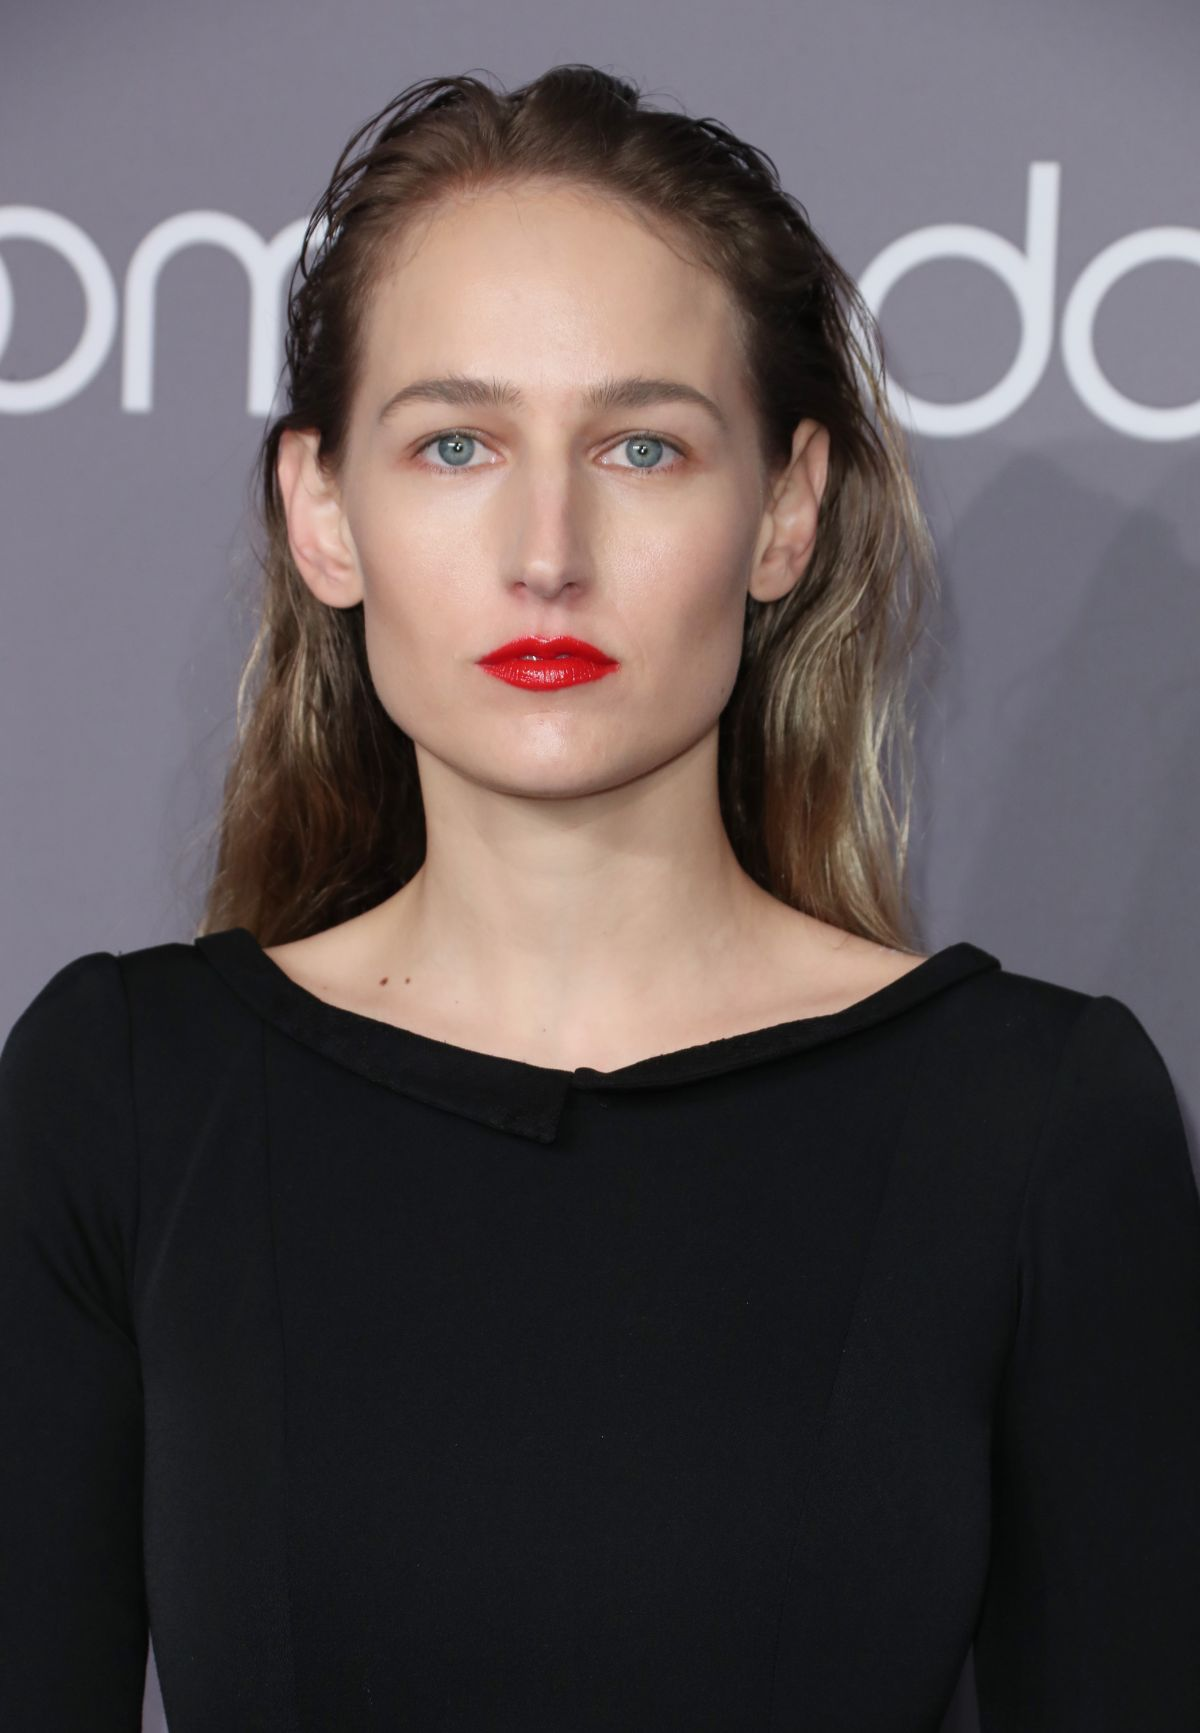 Leelee Sobieski nudes (68 foto and video), Pussy, Fappening, Twitter, butt 2020